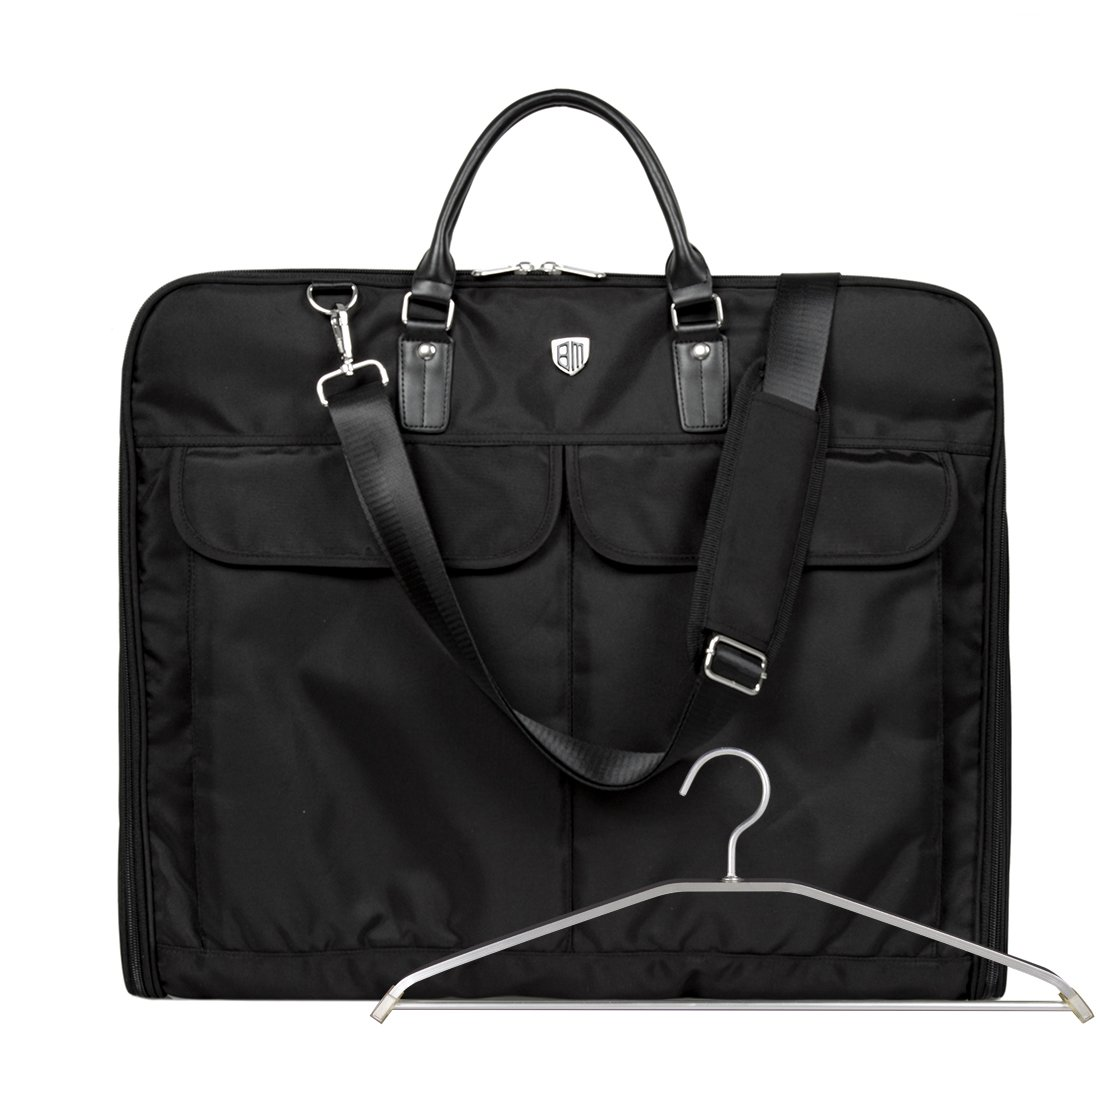 BAGSMART Garment Bag for Suits and Wedding Dresses with Shoulder Strap and Hanger, Black